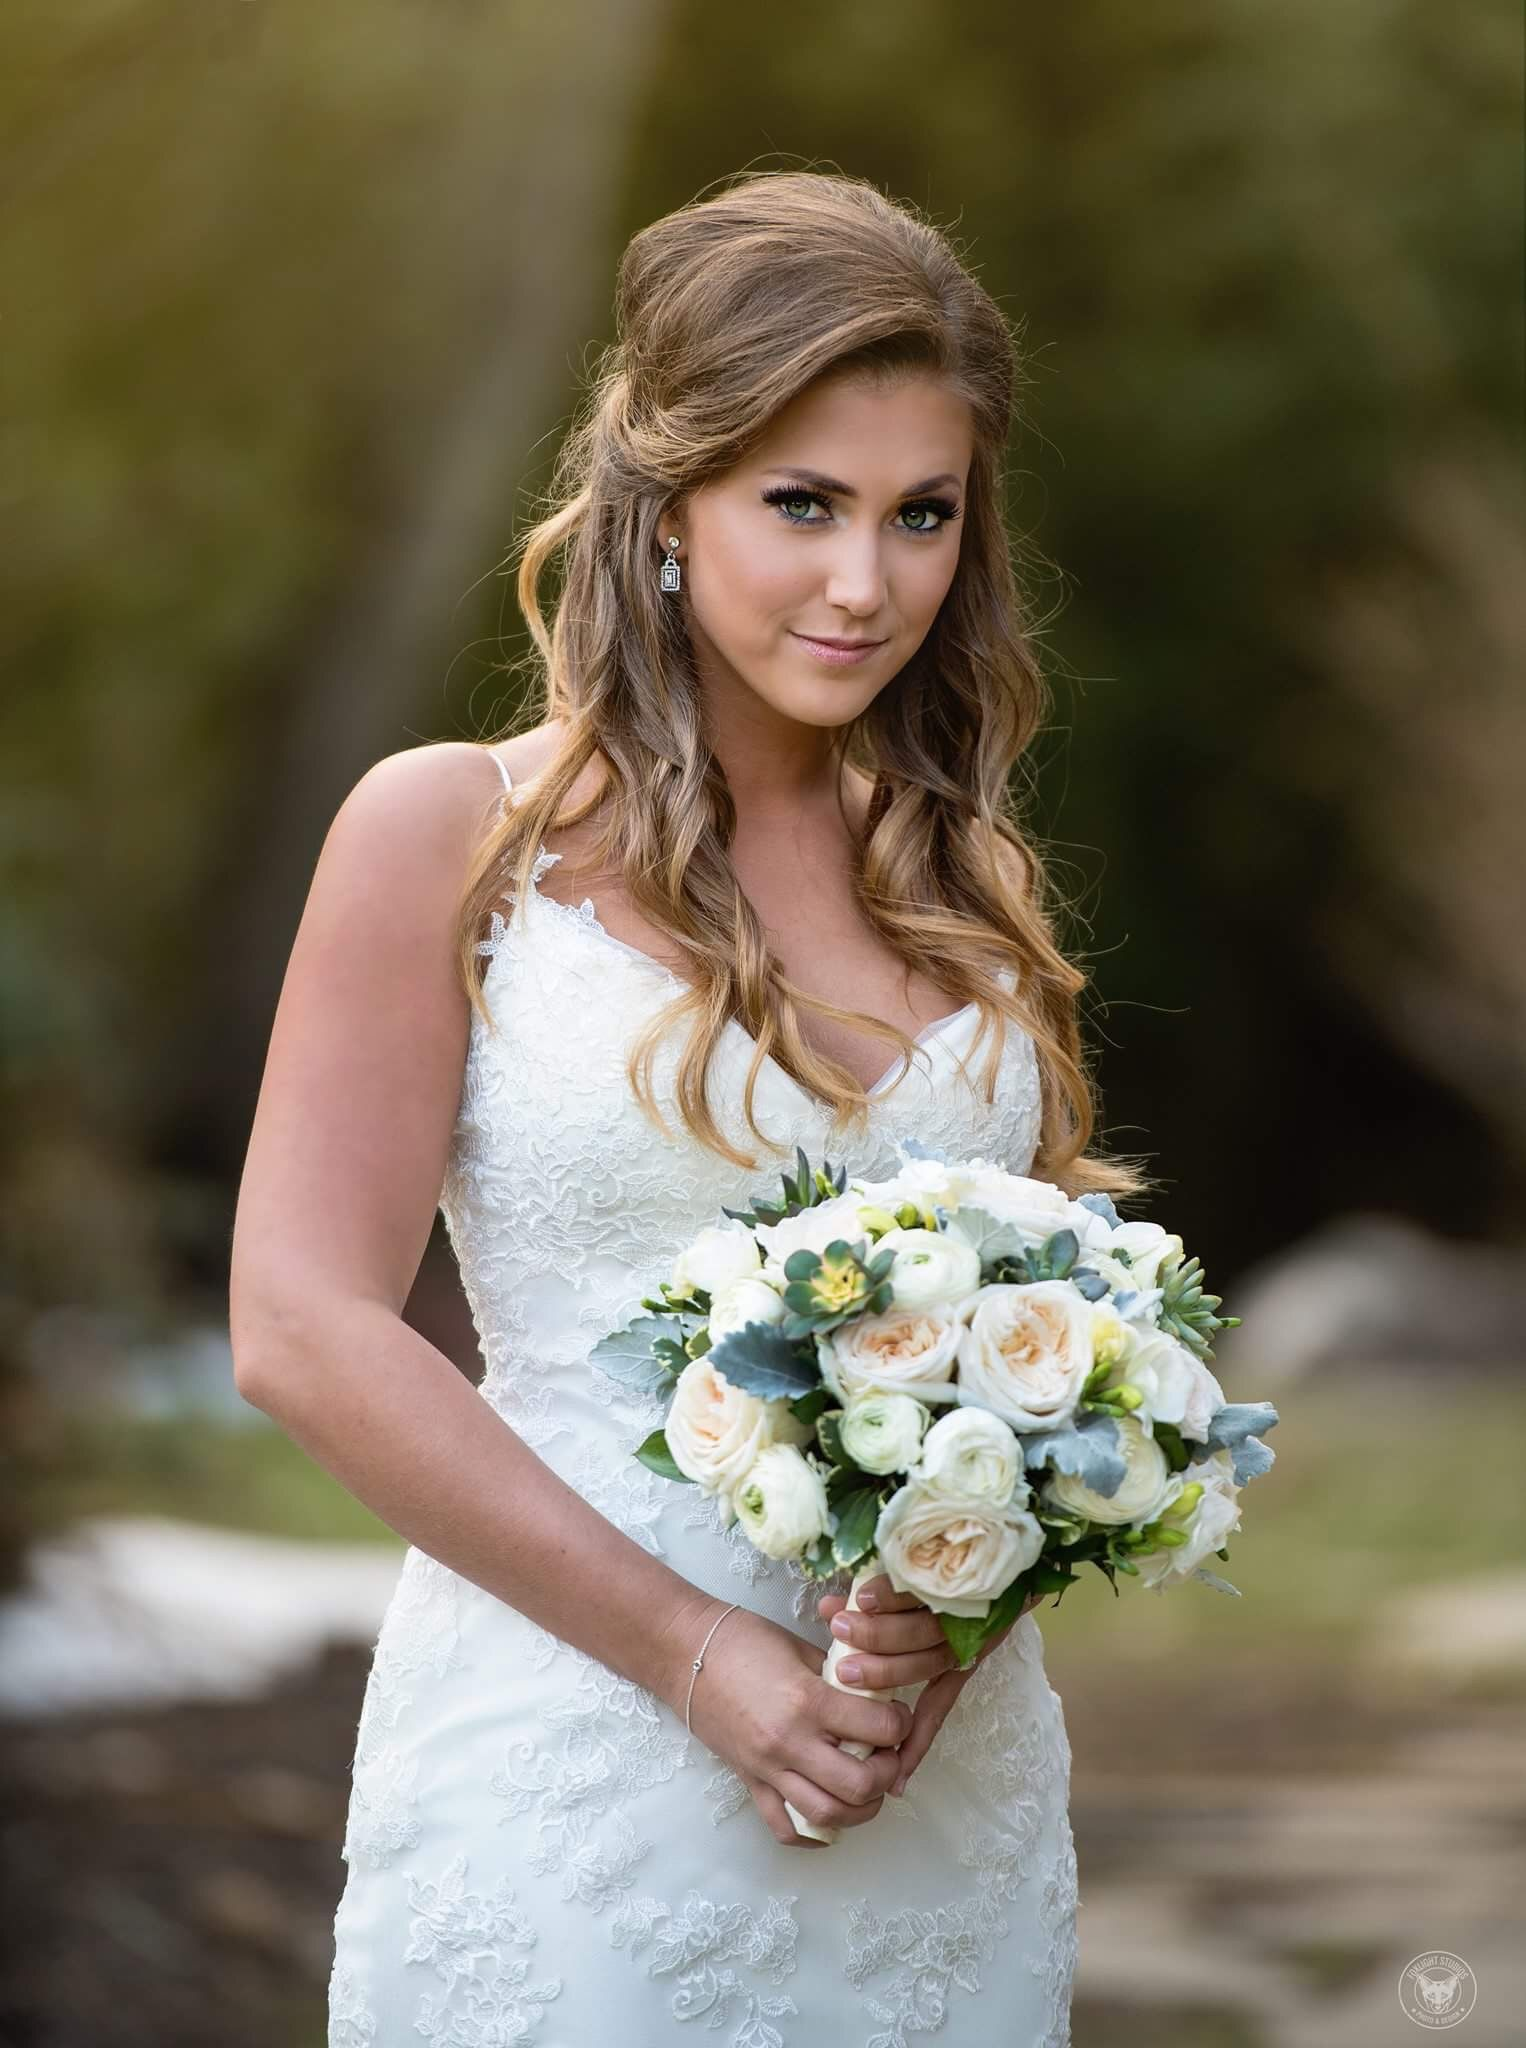 Bridal hair and makeup by www.thehouseofmakeup.com